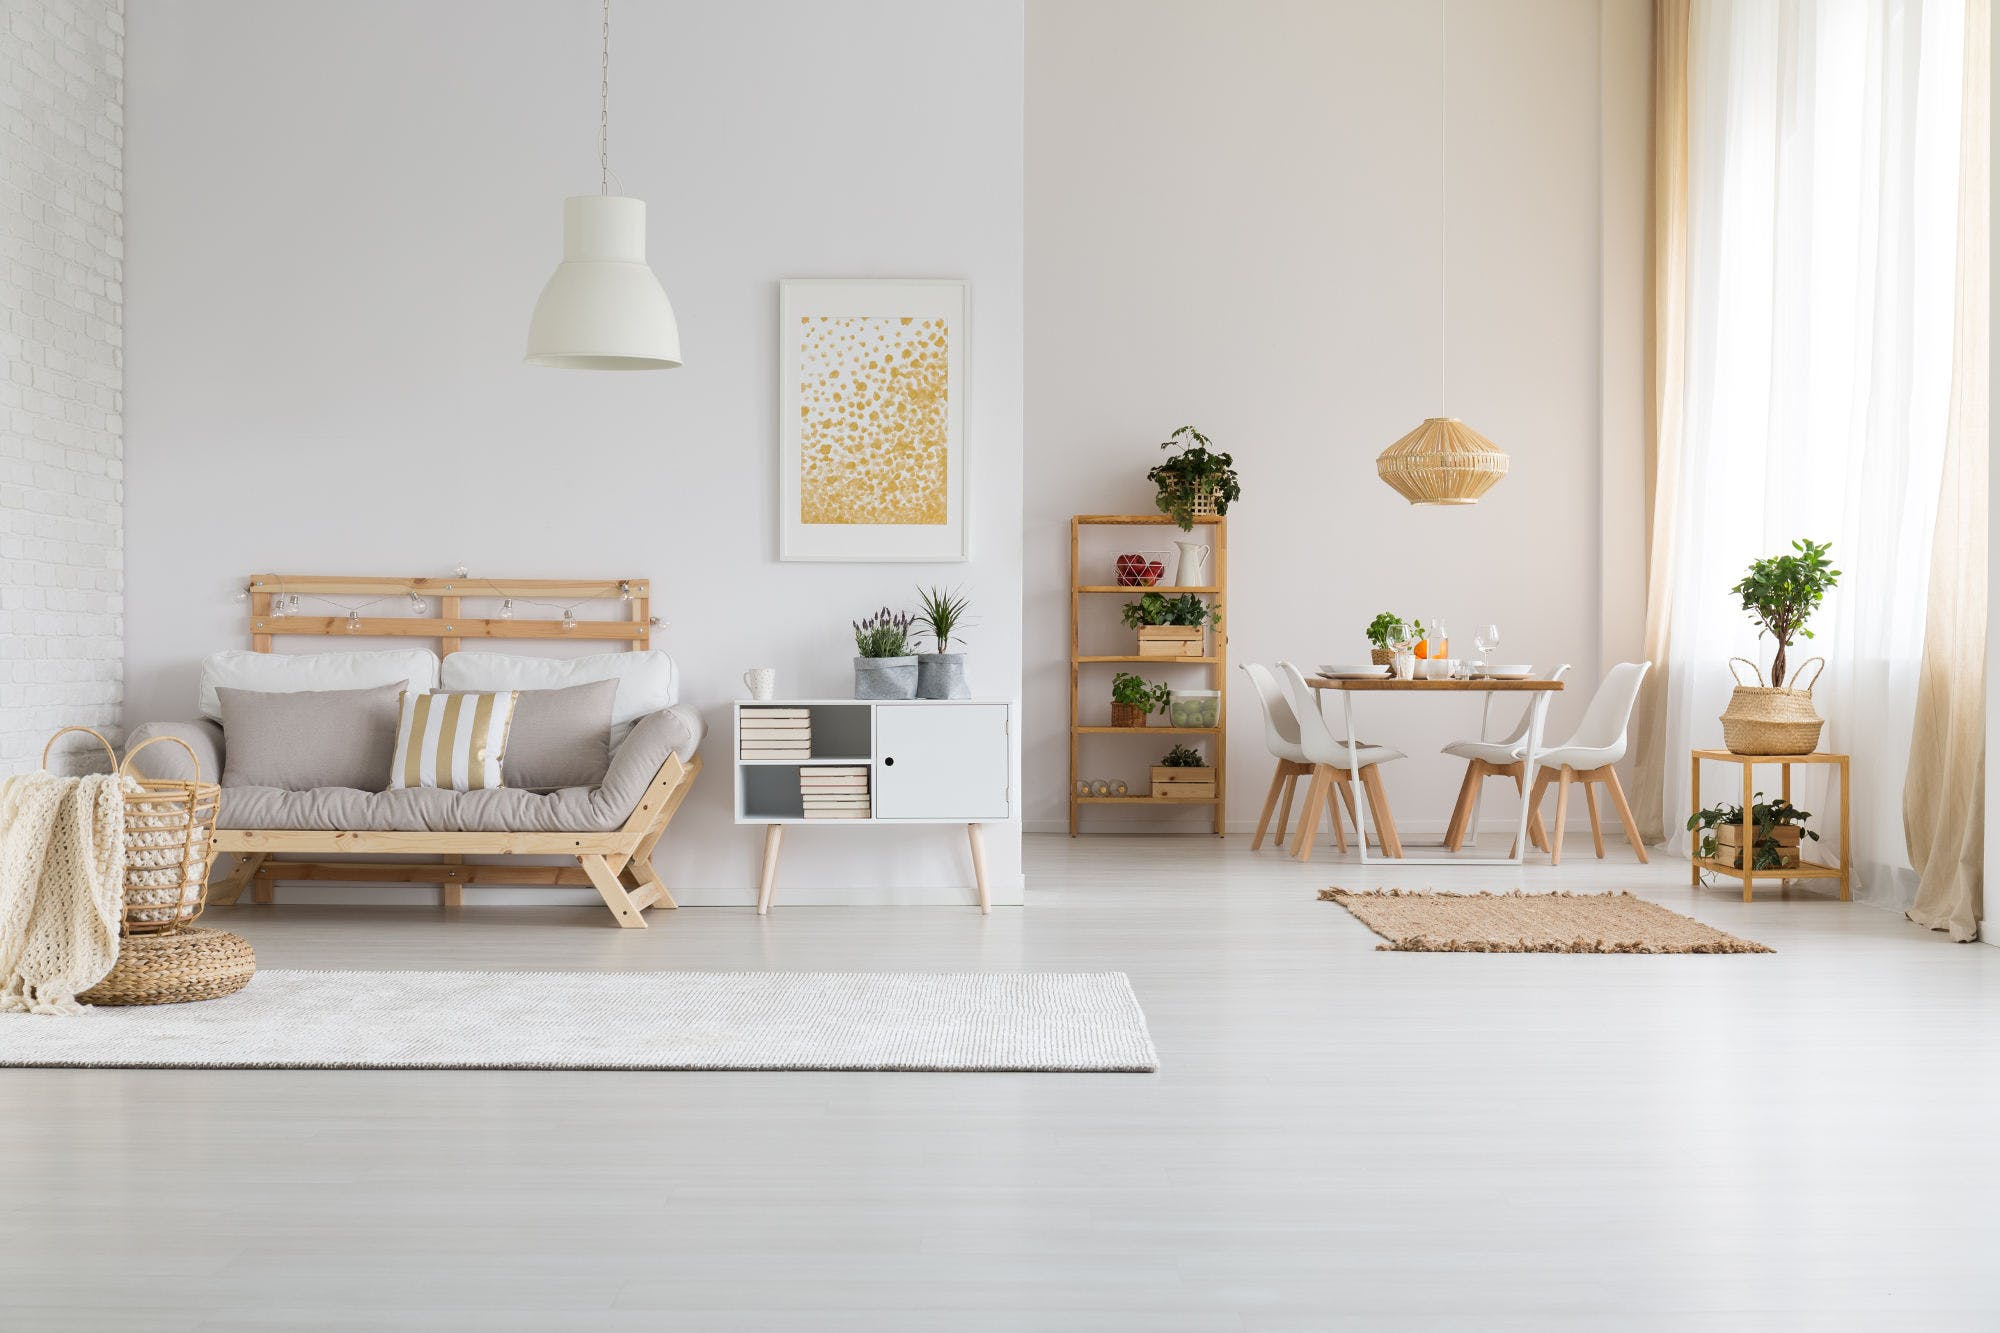 Image of raw1 in {{Spring at home: let's make the most of it!}} - Cosentino